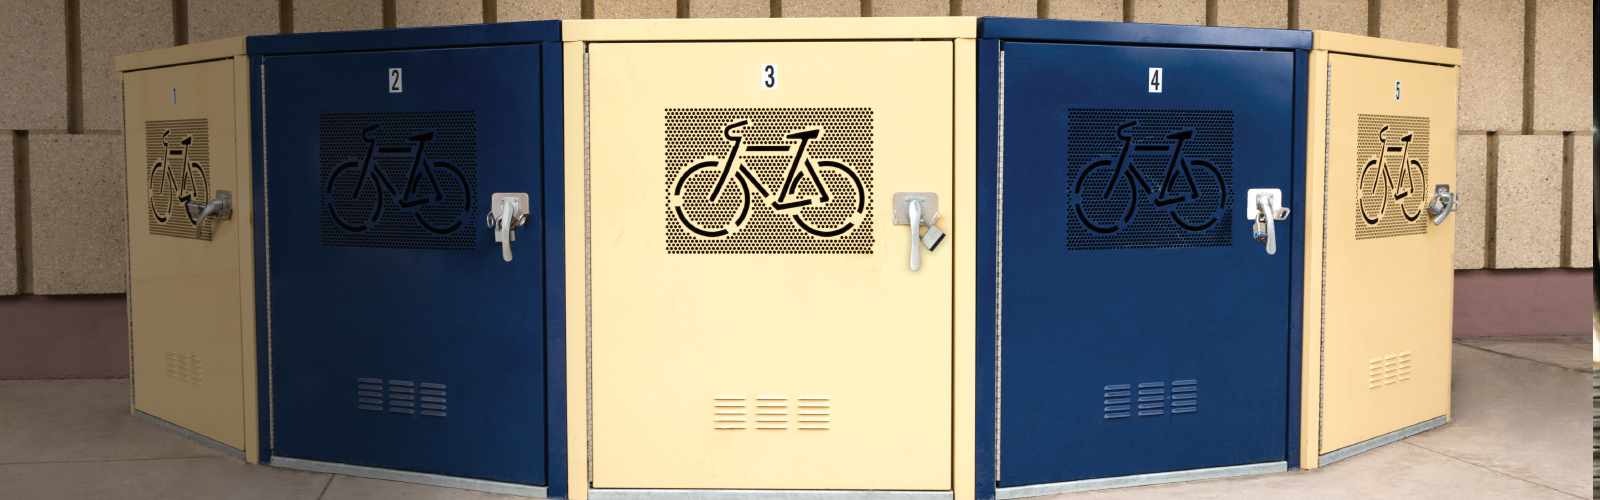 Madrax-Bike-Lockers